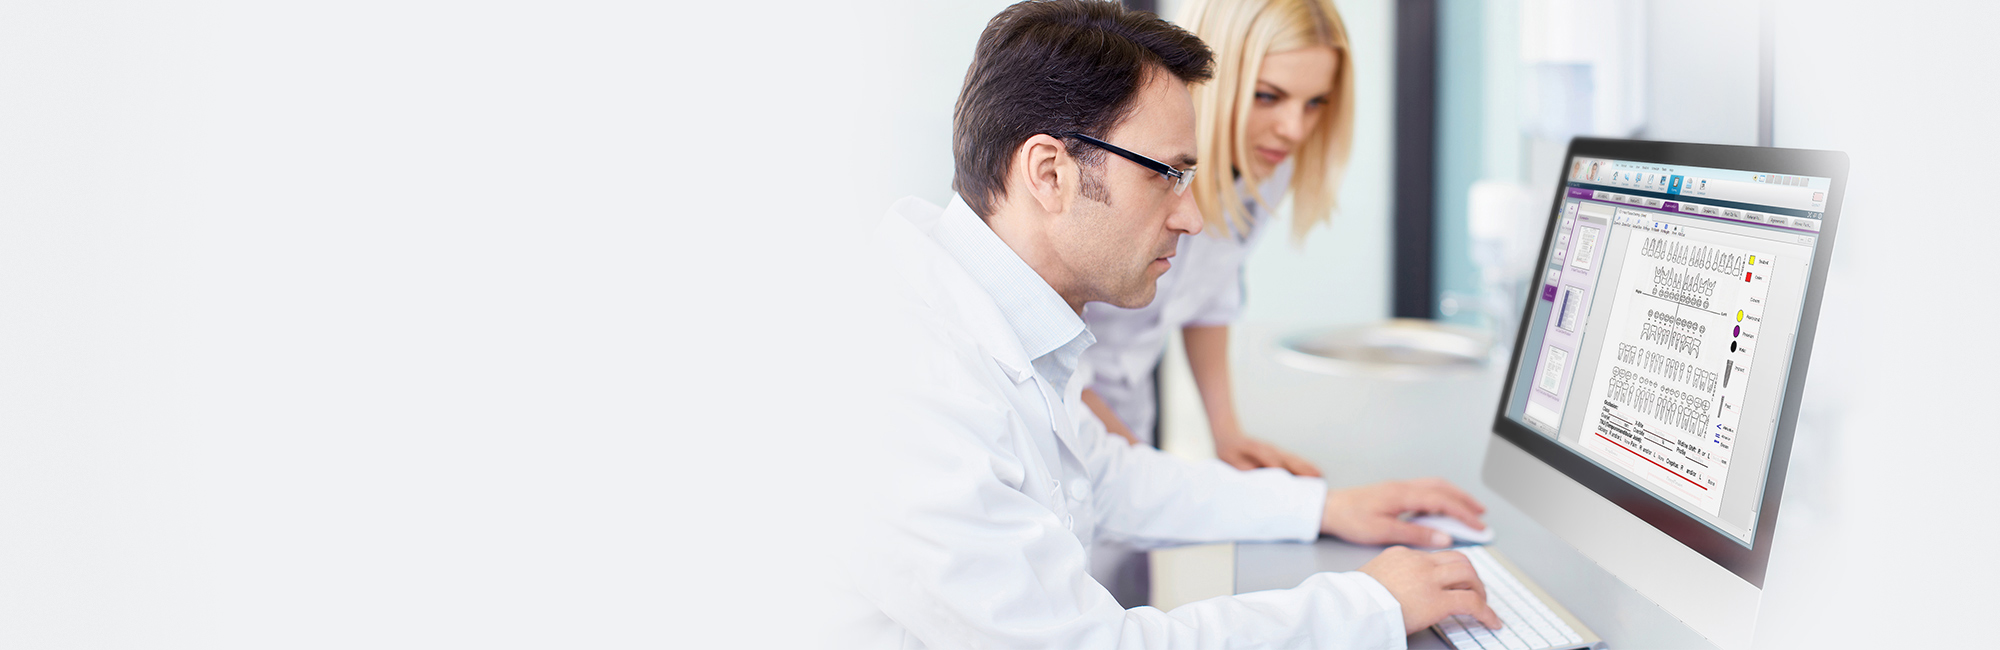 doctor using dental form software on computer with dental assistant